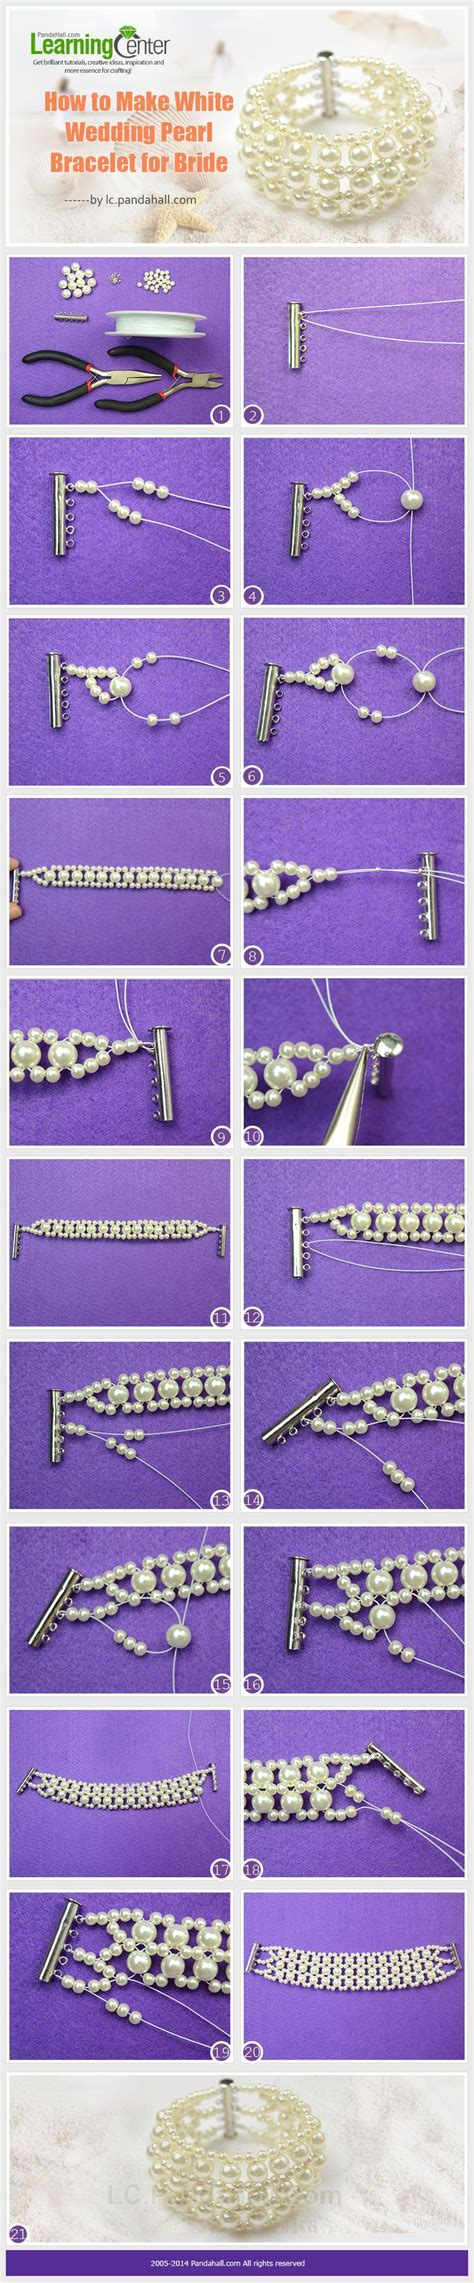 How to Make White Wedding Pearl Bracelet for Bride   Great Diy